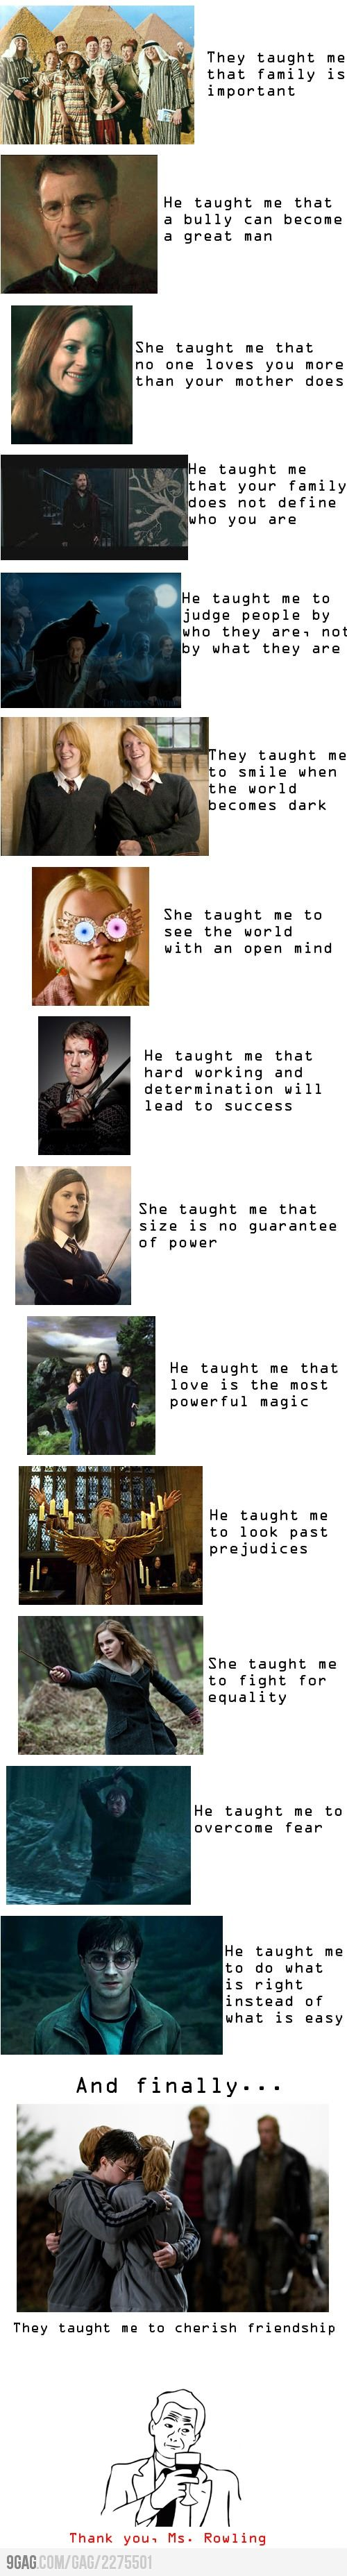 What I have learnt from Harry Potter